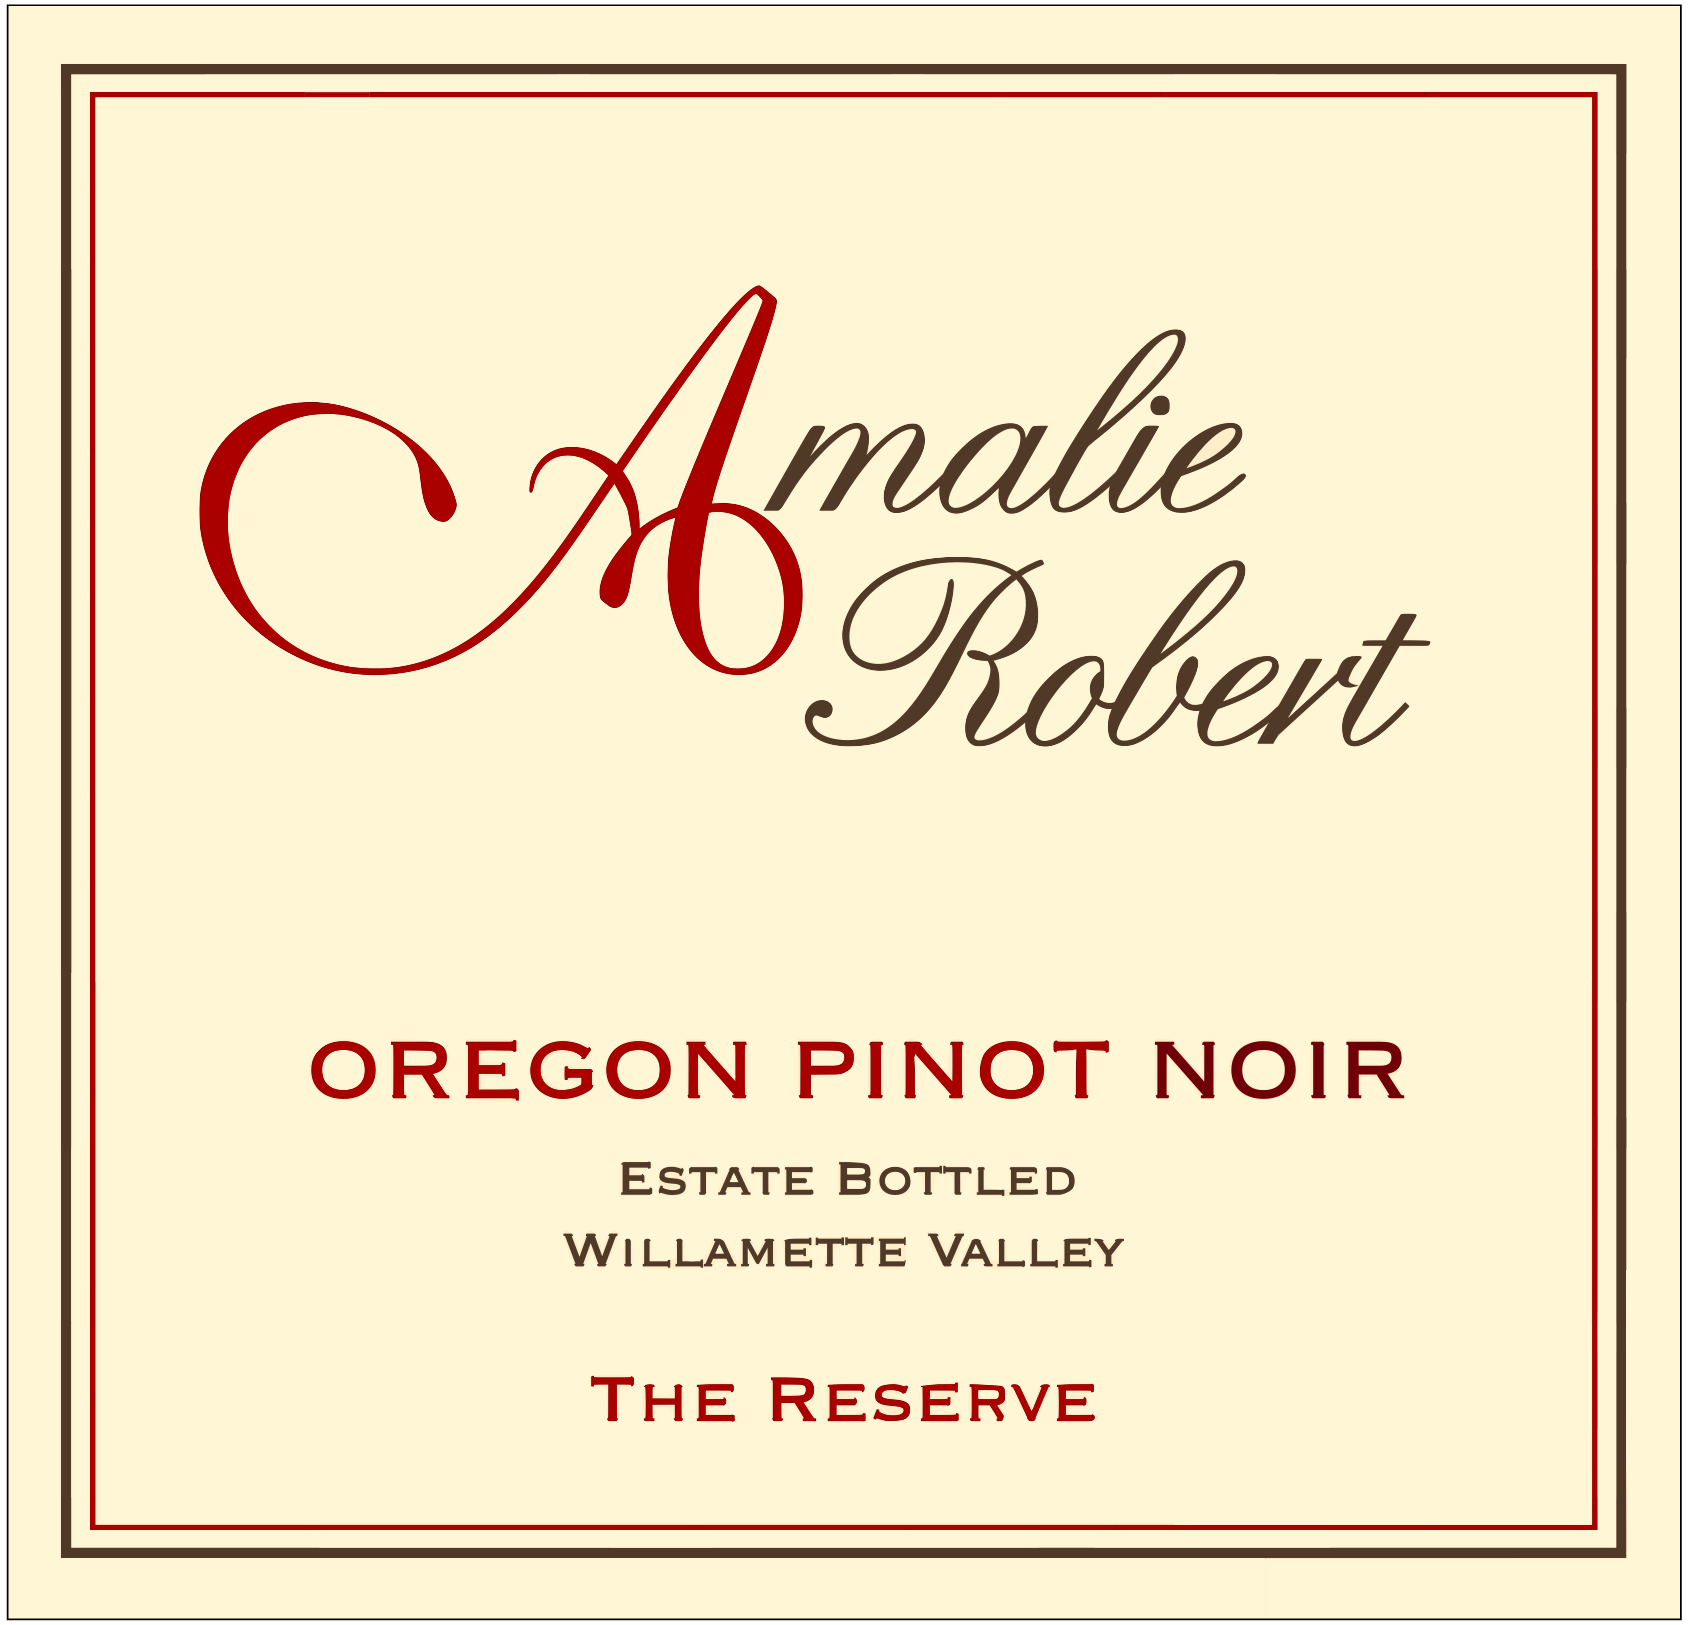 2007 The Reserve Pinot Noir